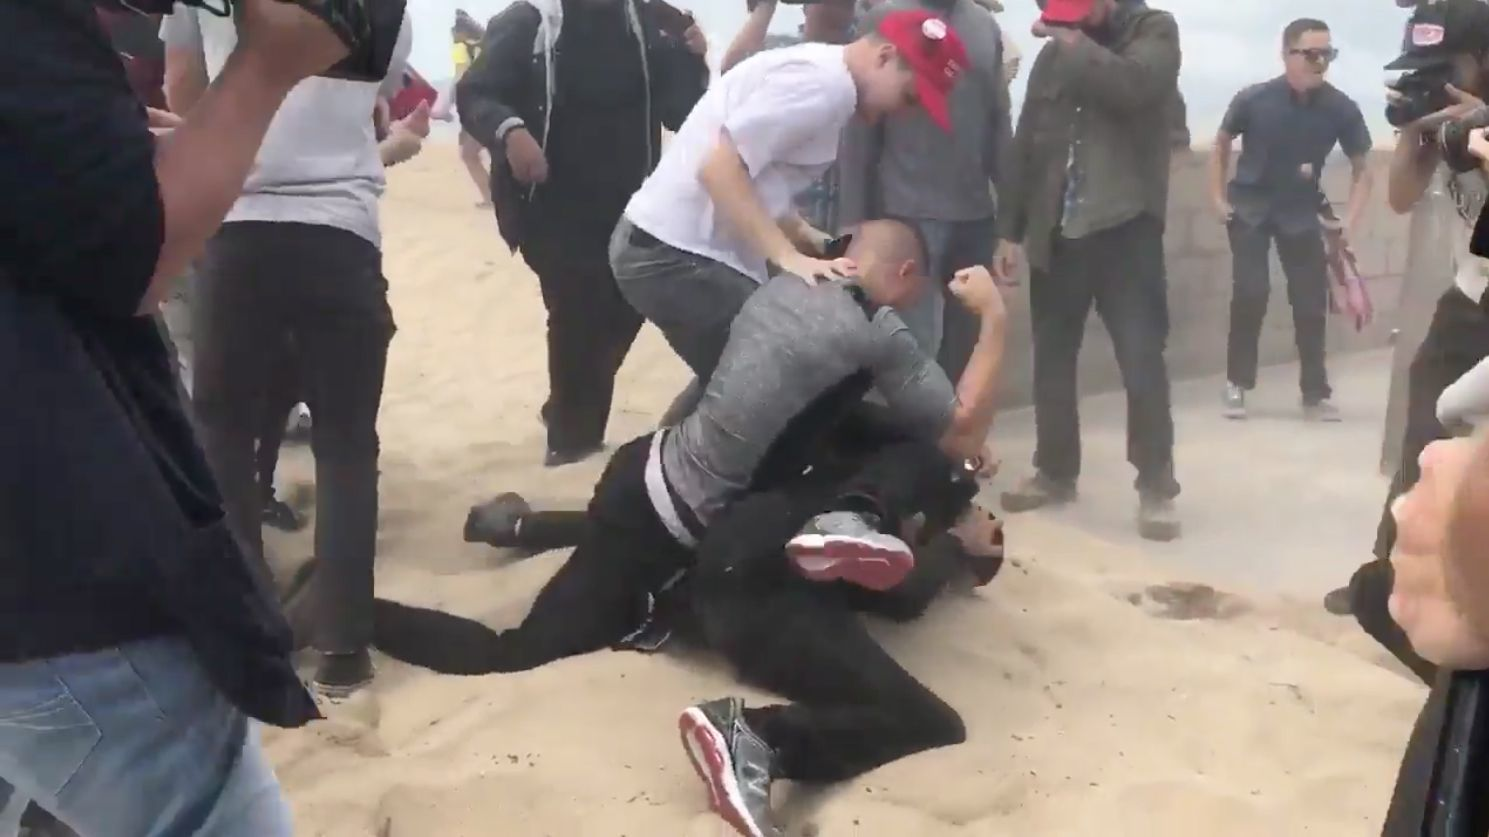 Violence erupts at pro-Trump rally in Huntington Beach